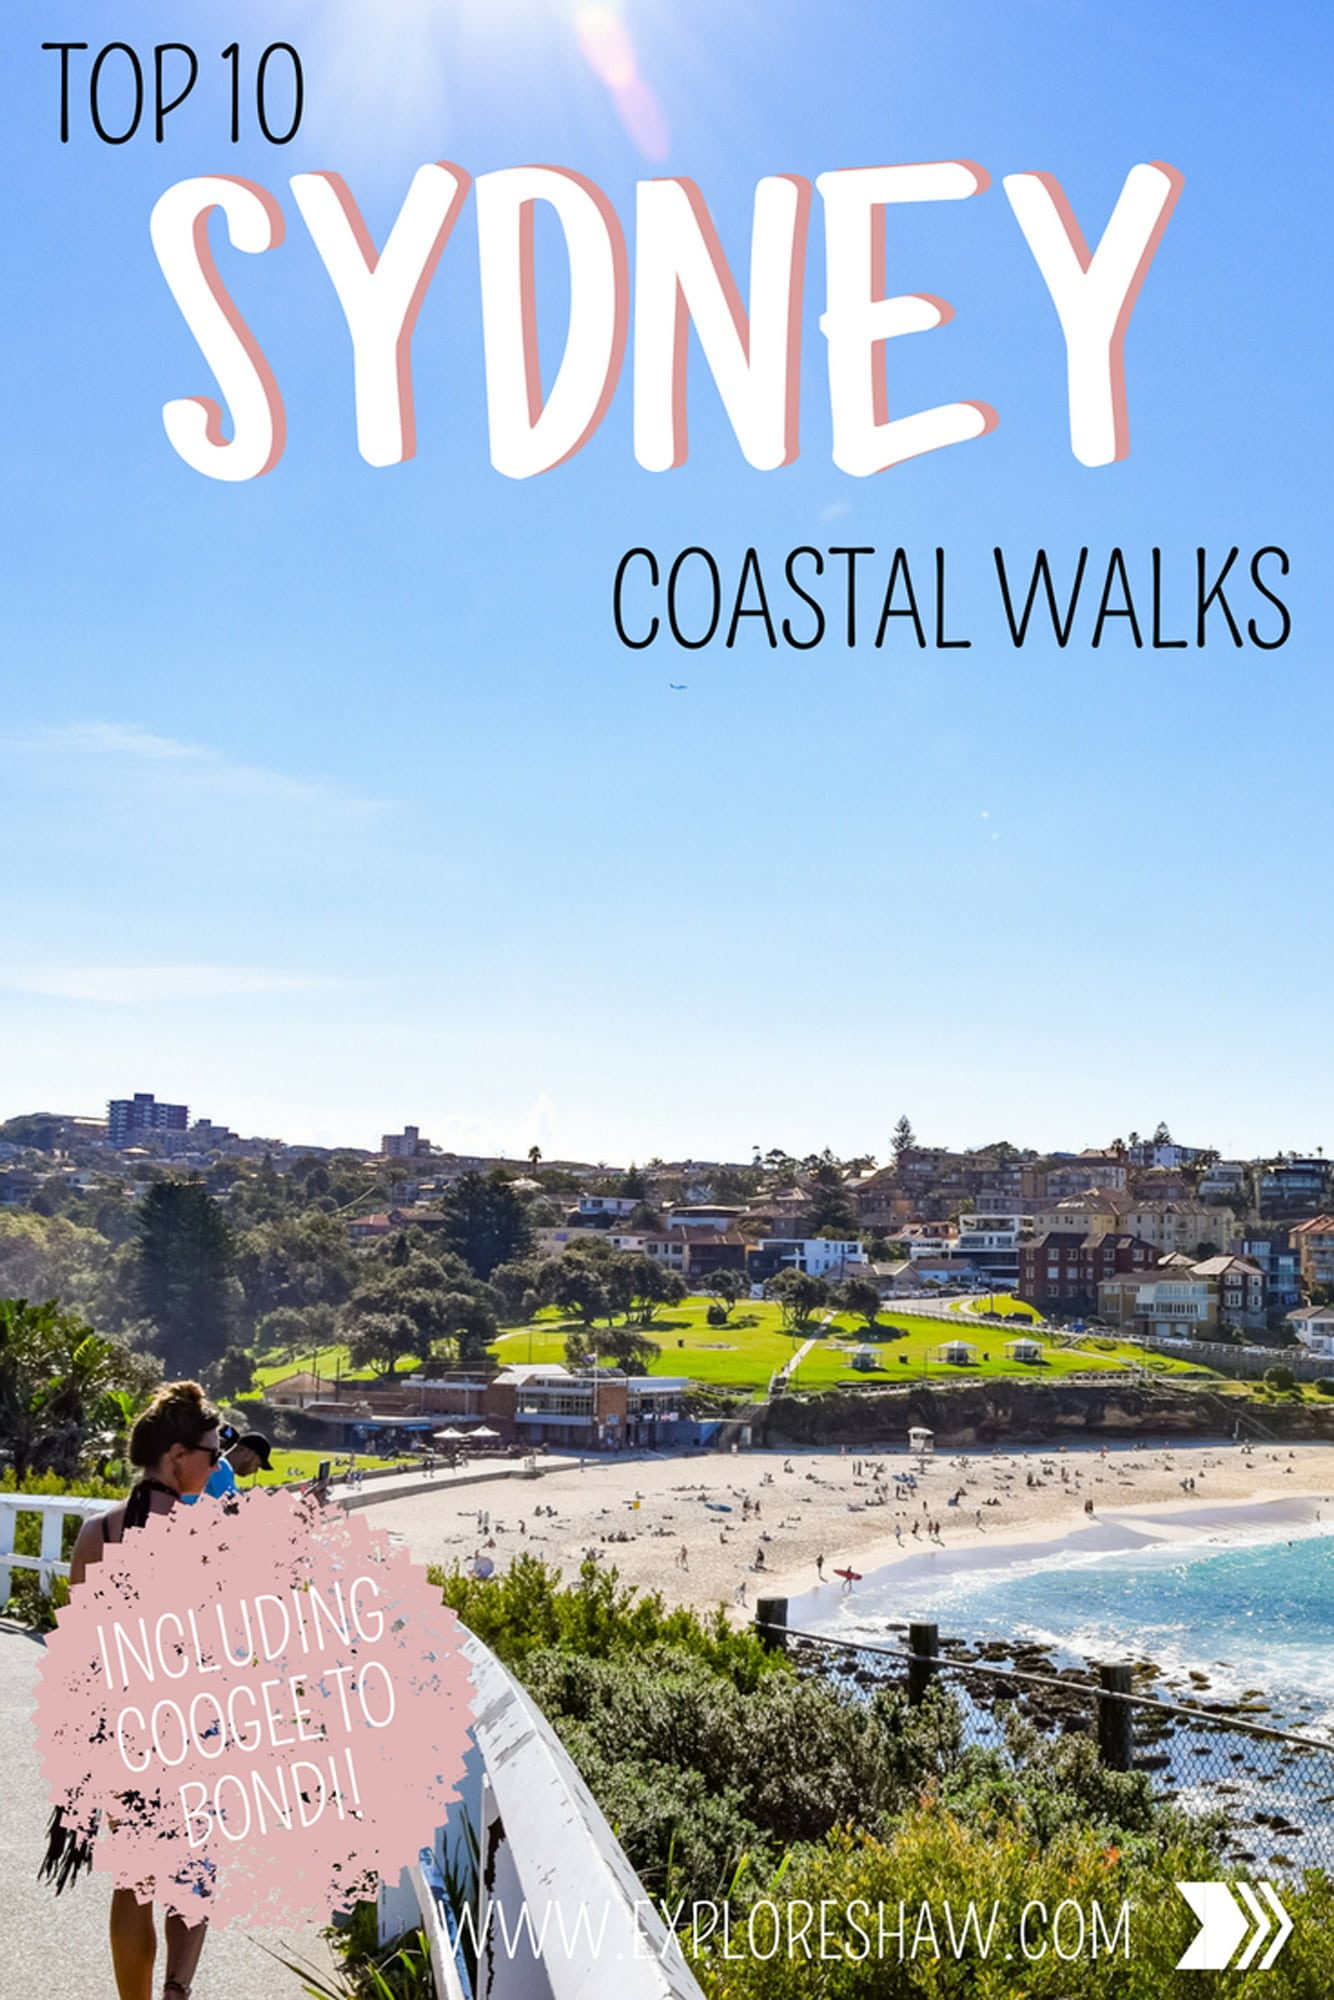 Top 10 Sydney Coastal Walks